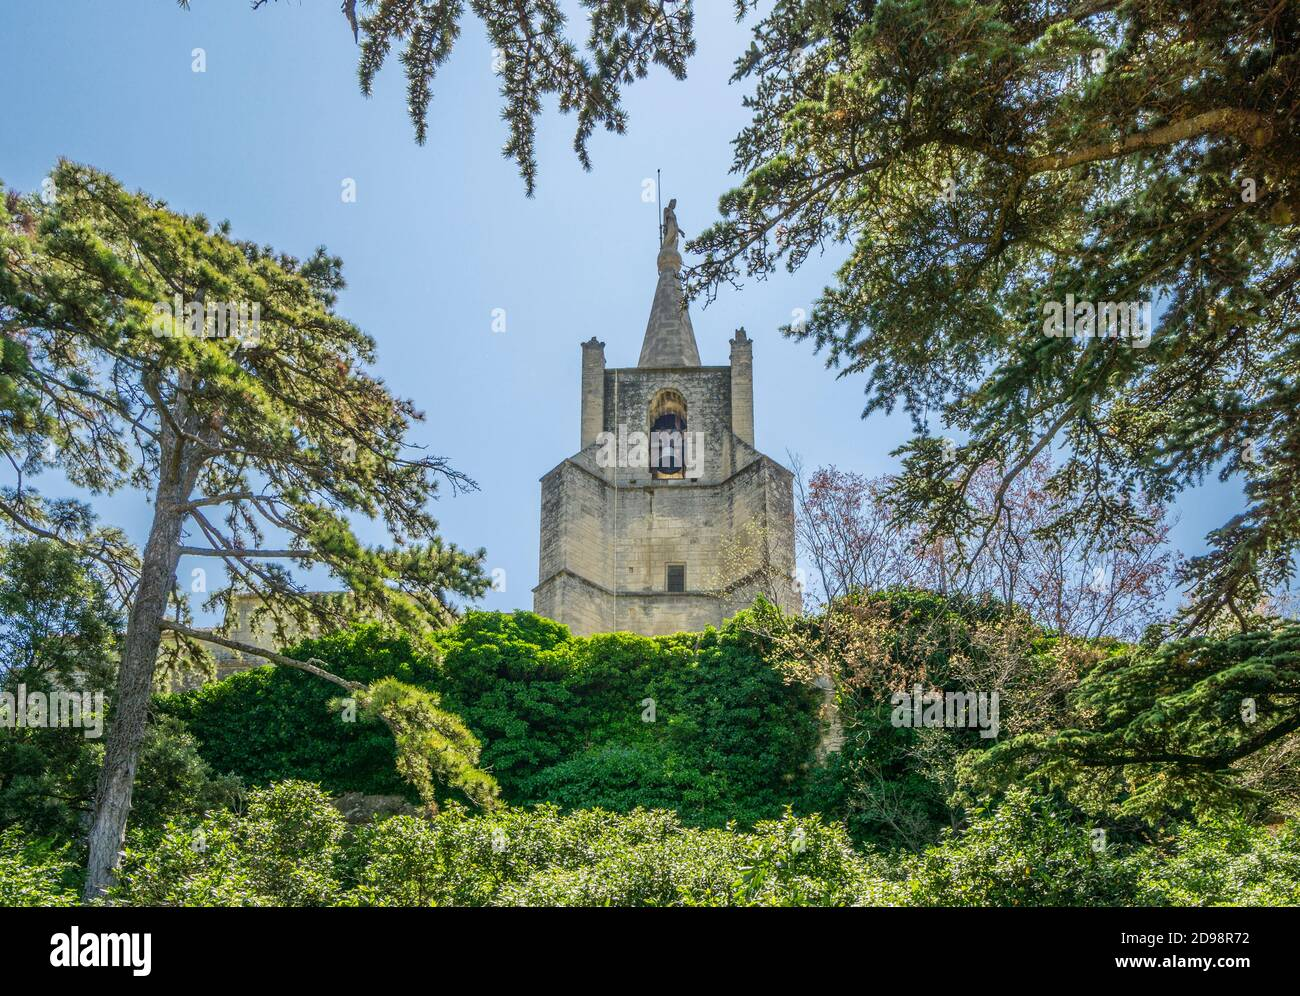 view of the église haute, the Upper Church from the rampards of Bonilis Castrum at of the ancient Luberon hillside village Bonnieux, Vaucluse departme Stock Photo